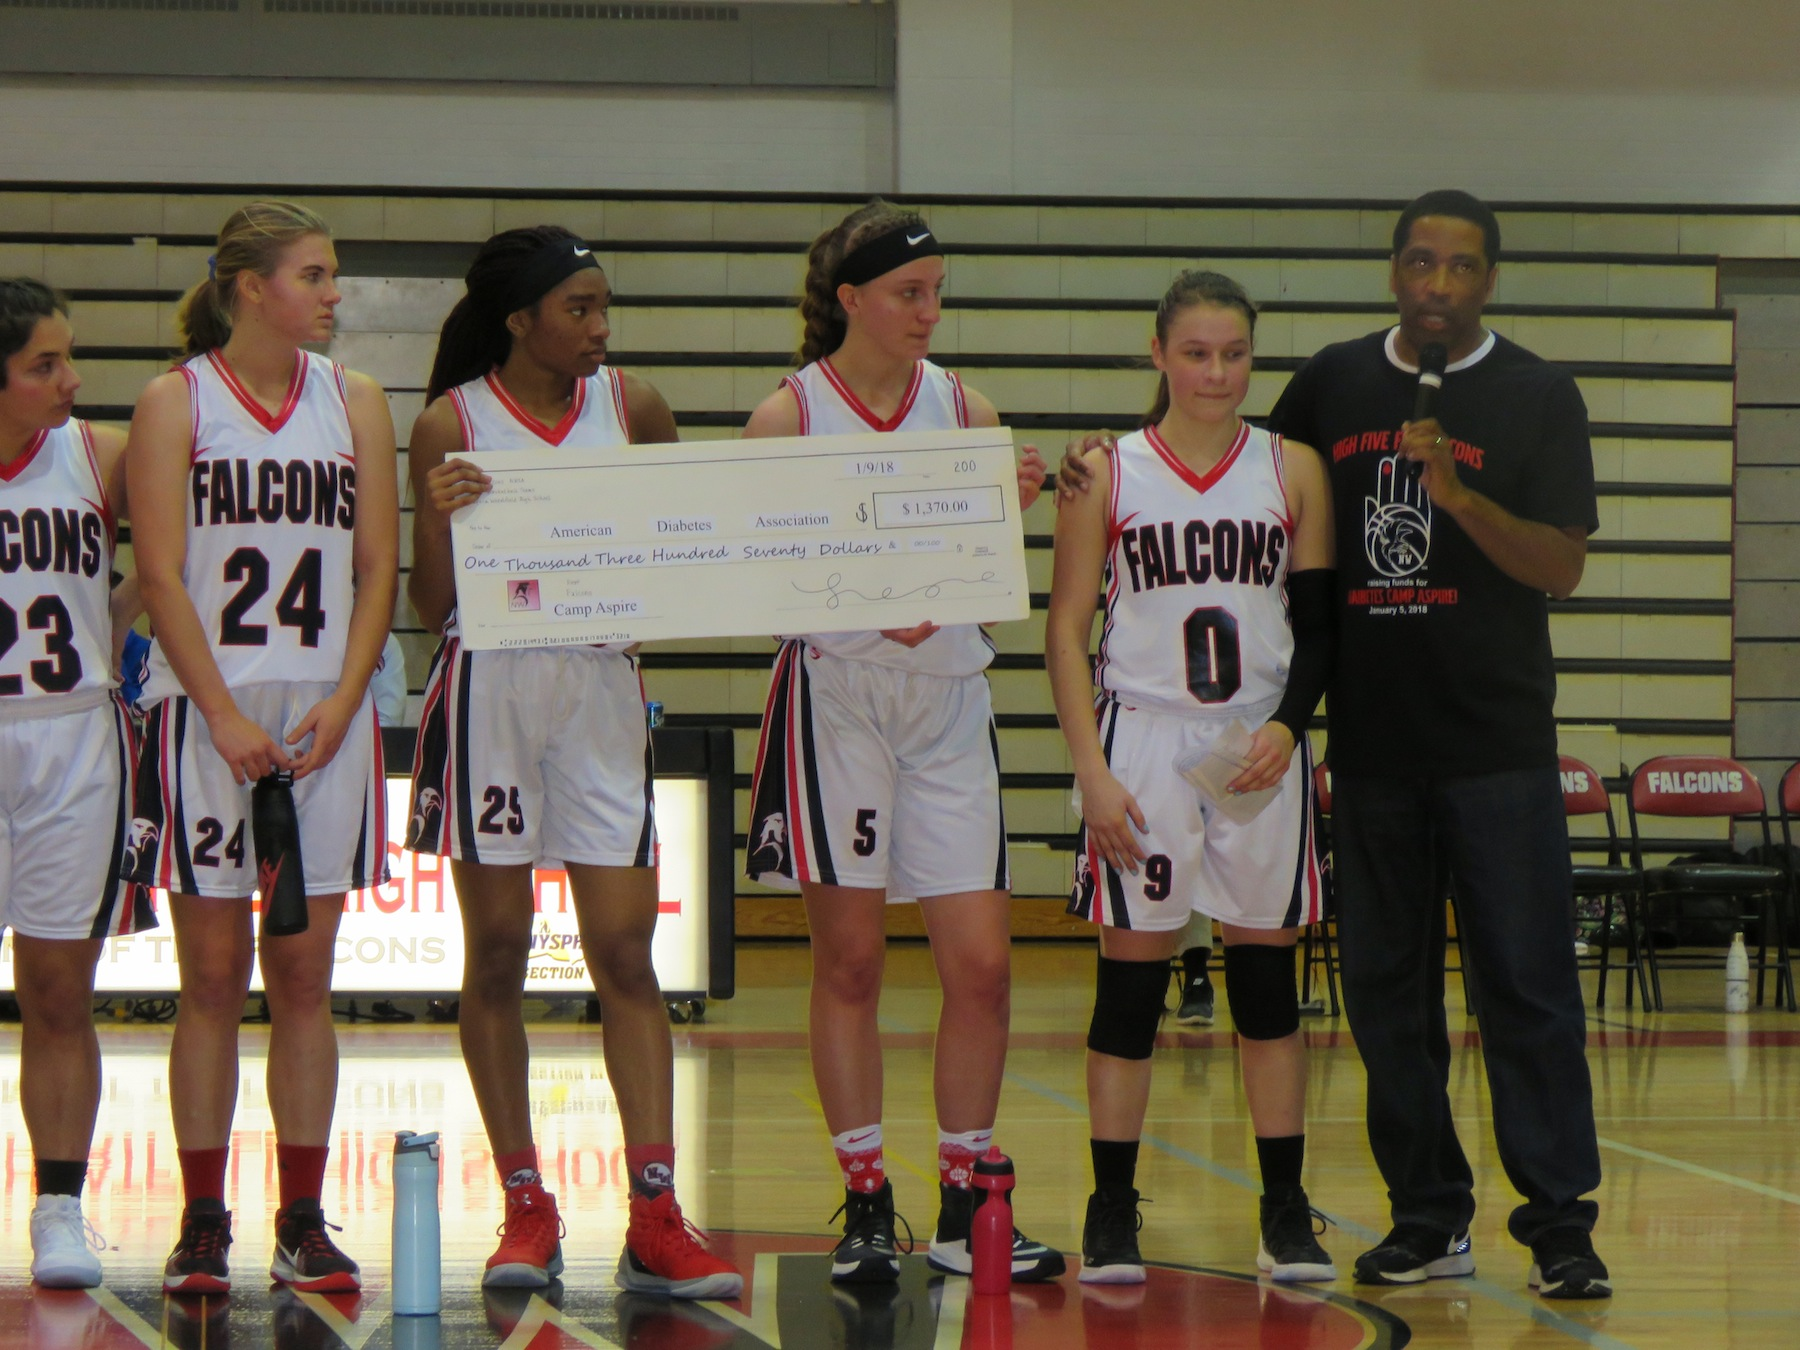 The Niagara-Wheatfield girls basketball team makes a donation to the American Diabetes Association. From left to right: Tara Perrault, Brianna Zayatz, LeGary Jackson, Emma Carrier, Kelsey Lachowski and coach Gary Jackson. (Photo by David Yarger)